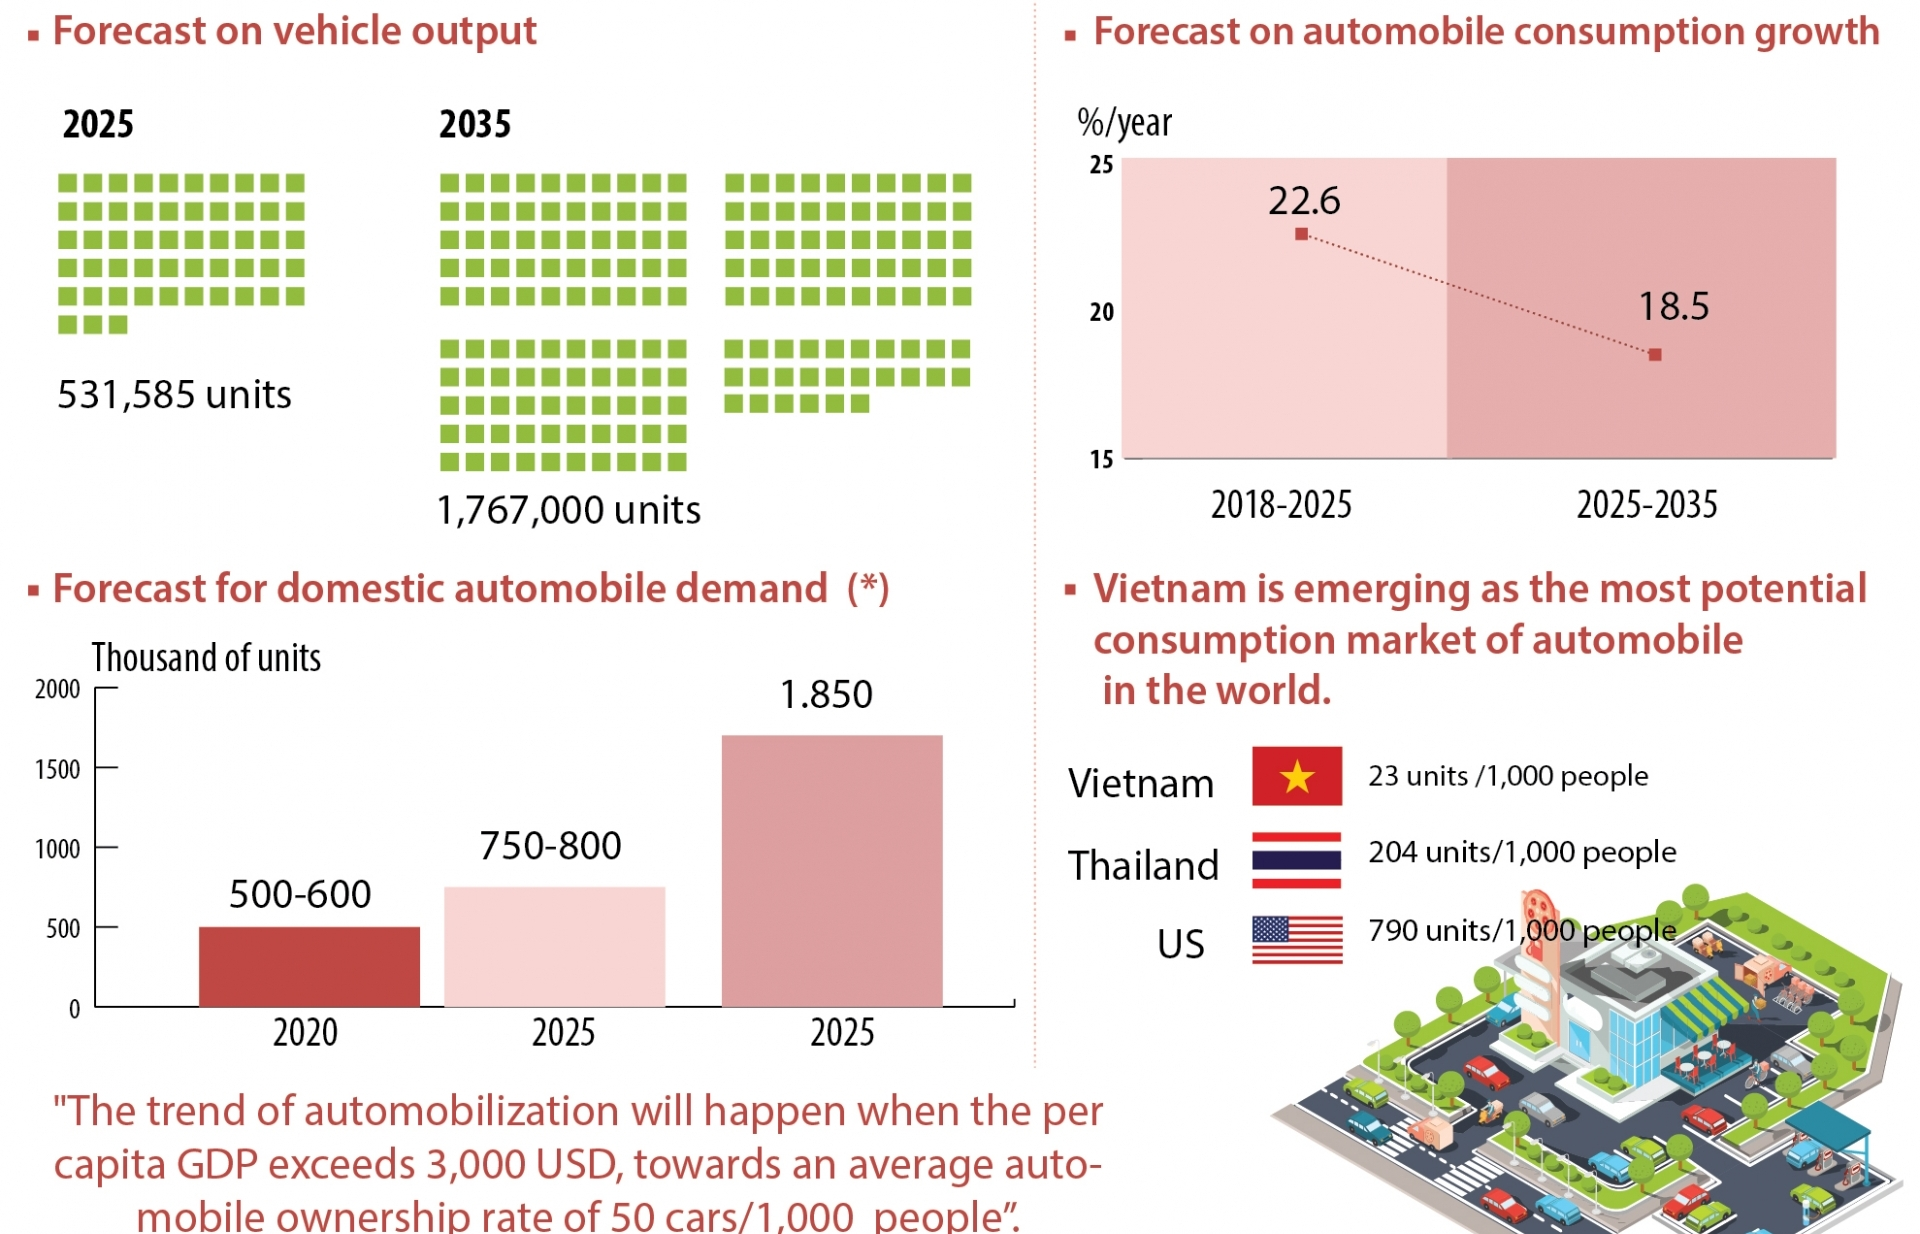 Forecast on automobile consumption growth to 2025